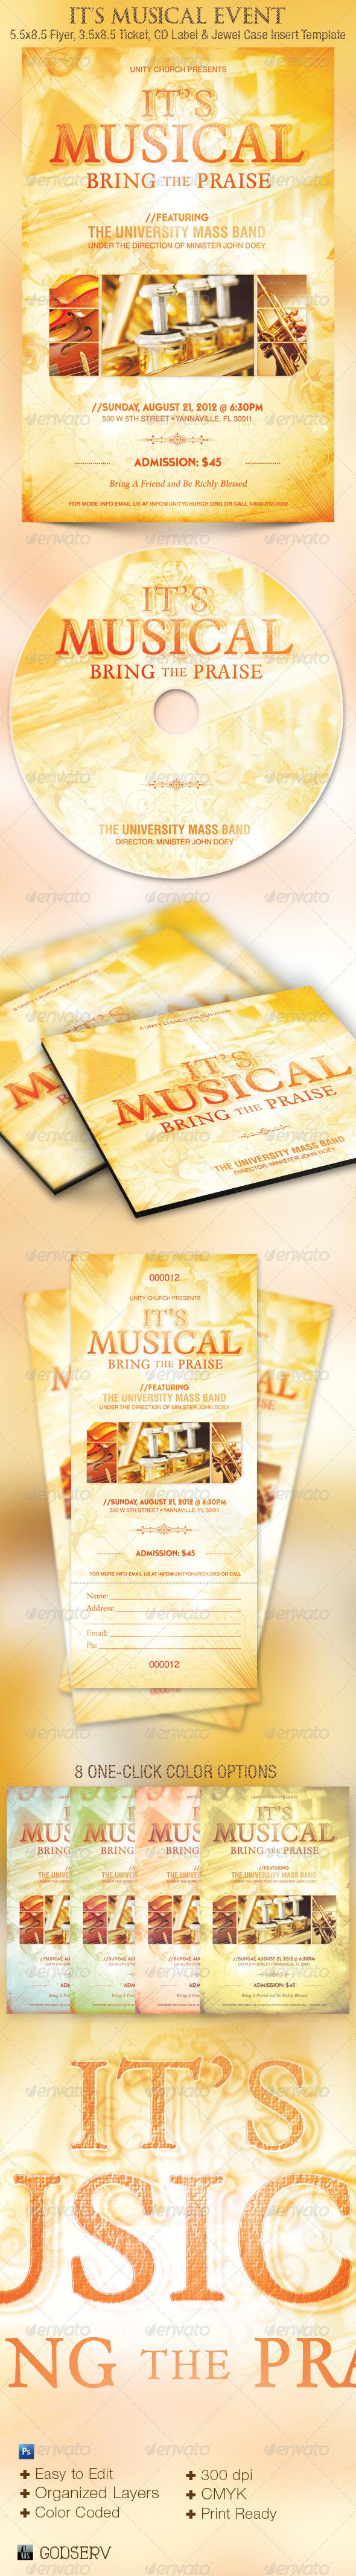 Musical Event Flyer Ticket CD Template is geared towards usage for any kind of church musical or drama events. Use it for Musical Concerts, Choir Concert, Solo Artist Concert, Gospel Fundraising Concerts and more. The classical Victorian design with floral and